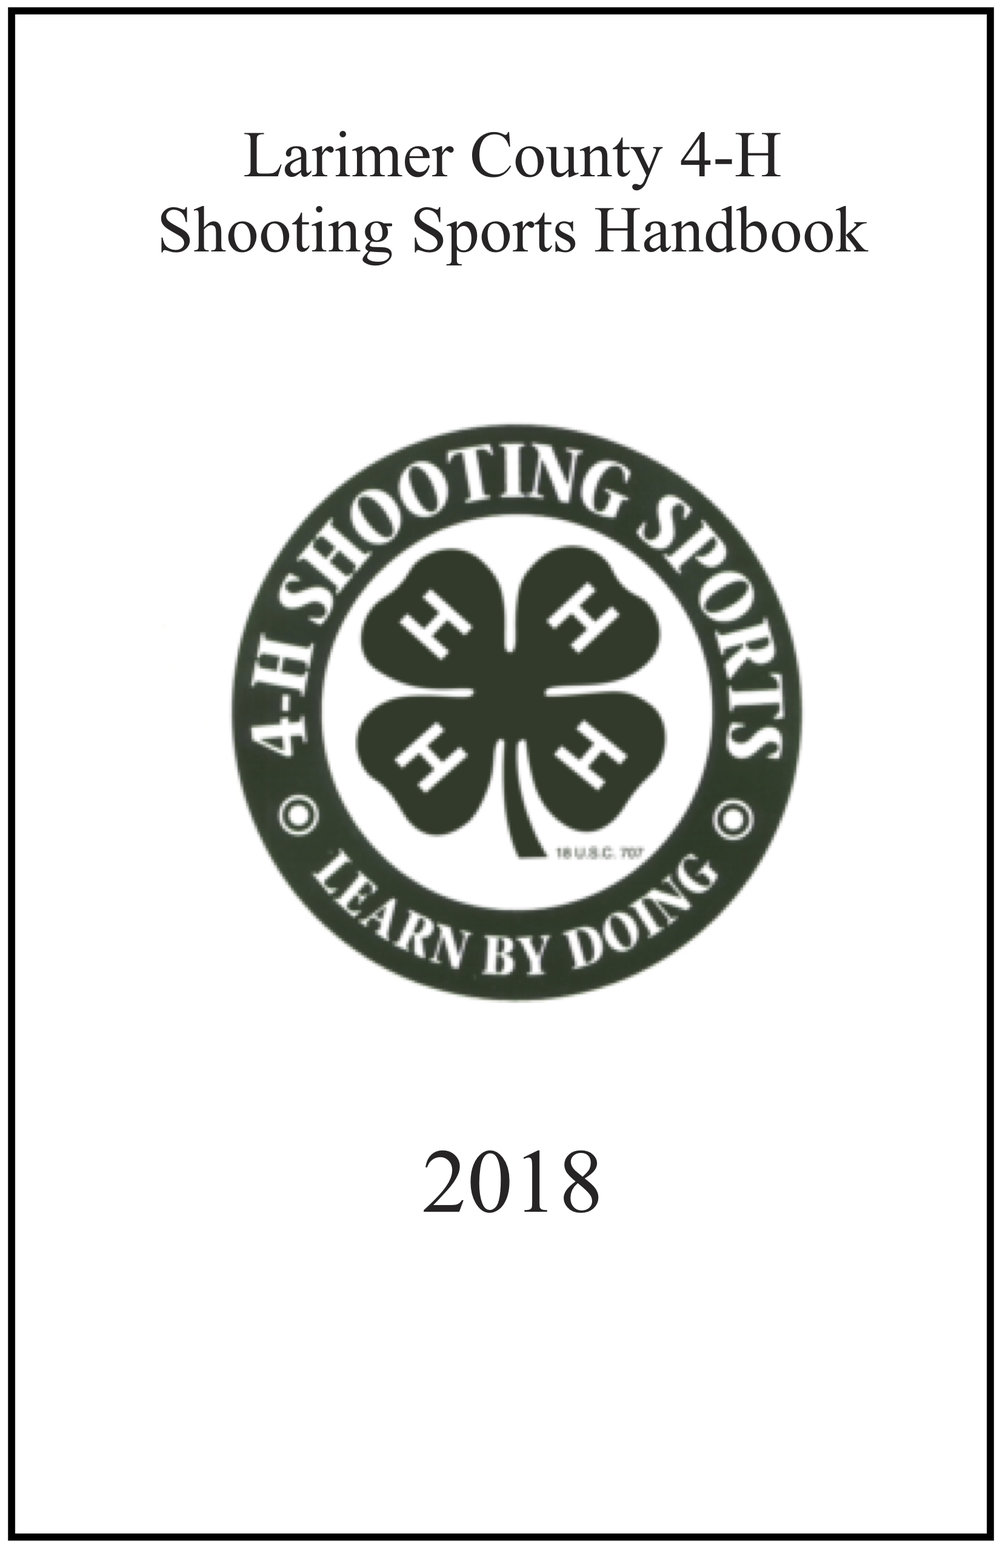 Shooting Sports Handbook.2018.Cover.jpg